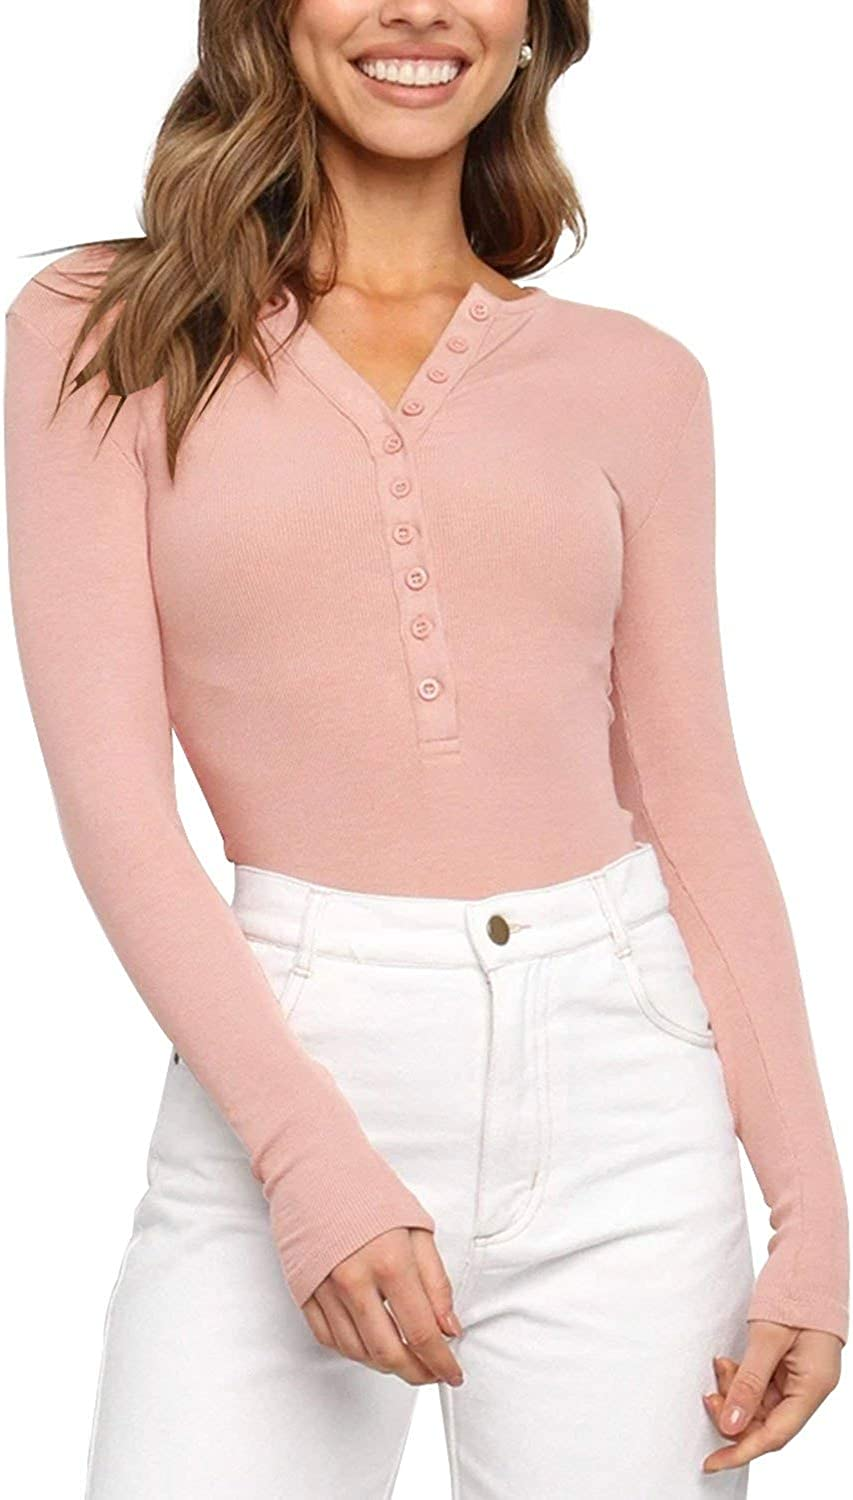 REORIA Women's V Neck Long Sleeve Button Down Henley Shirt Ribbed Knit Leotards Bodysuits Tops